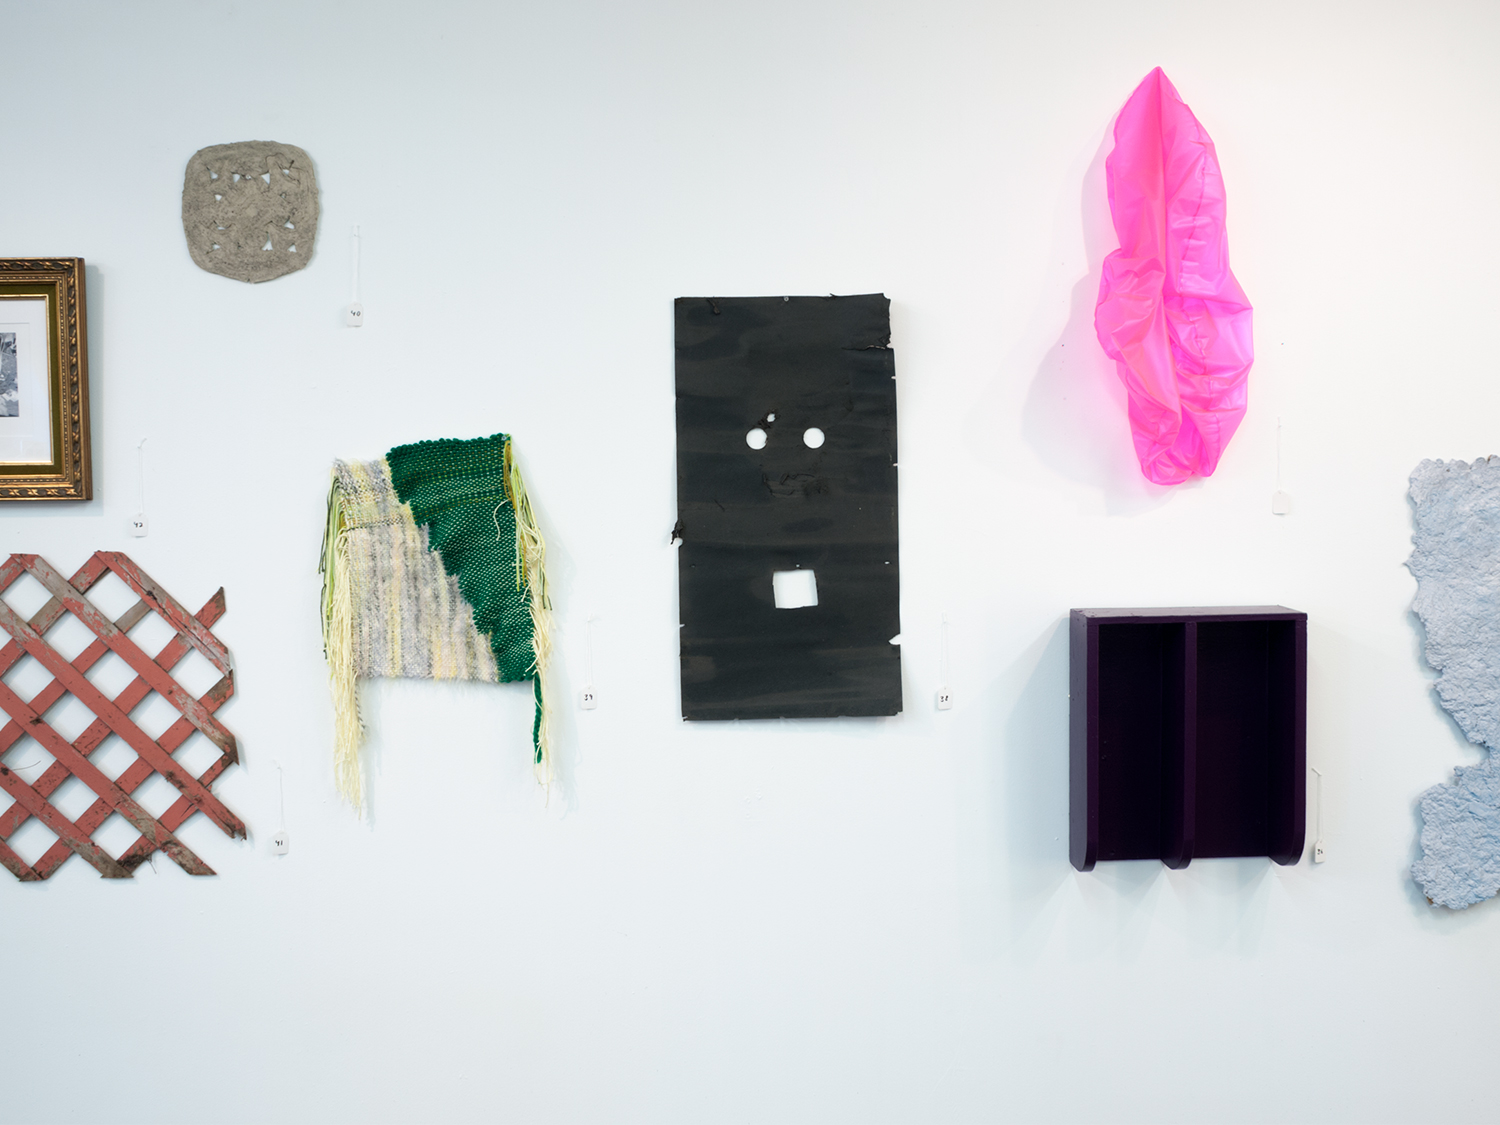 transitional_artifacts-wall-objects03-1500x1125.jpg